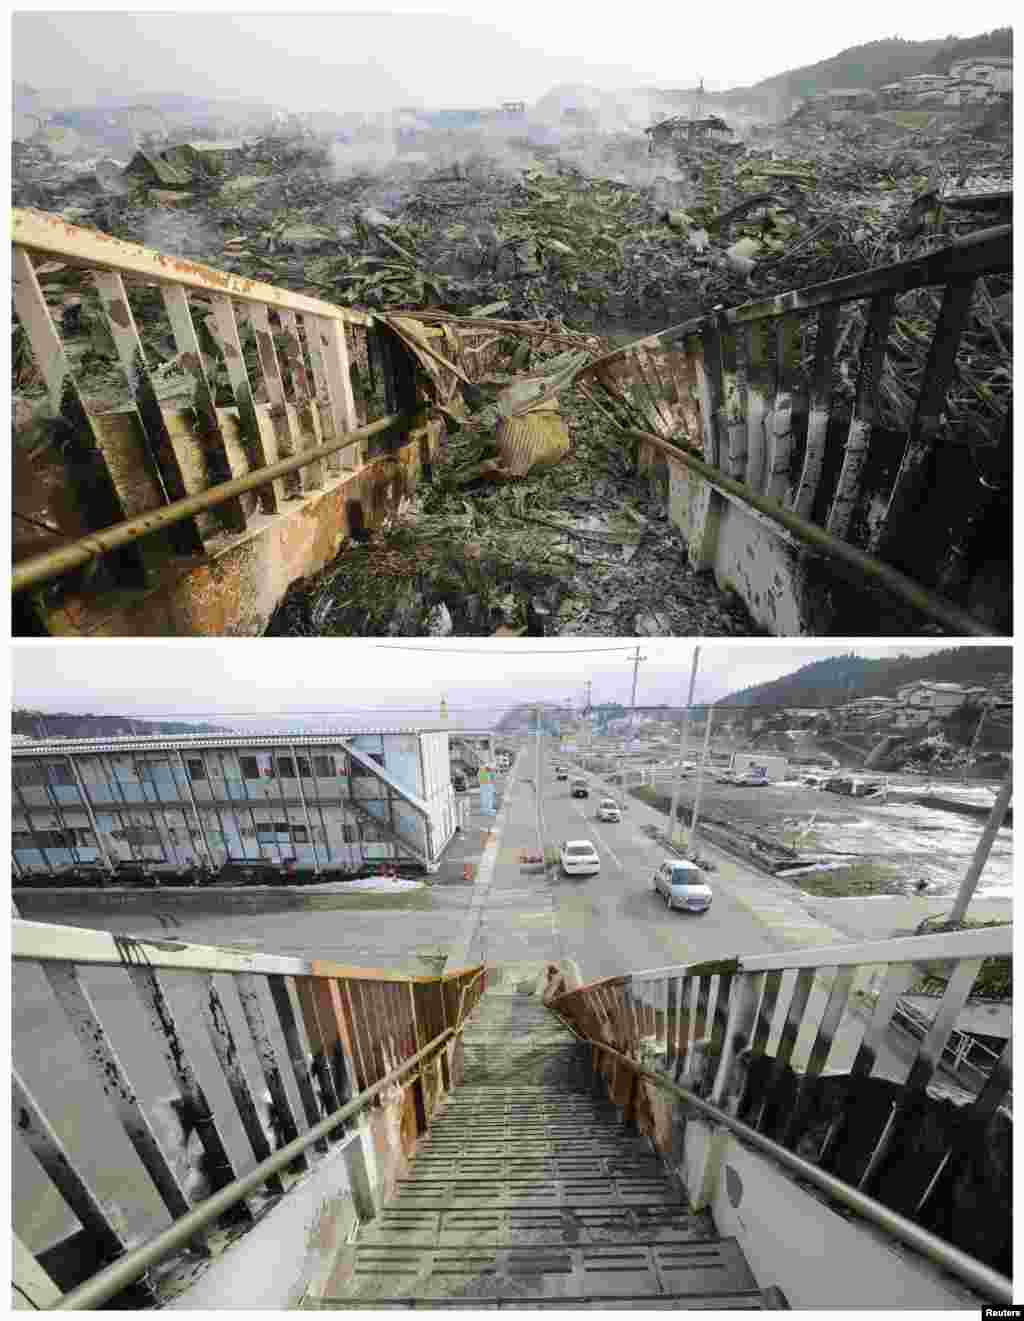 On top, tsunami-devastated Kesennuma in Miyagi Prefecture on March 13, 2011, and below on March 1, 2012